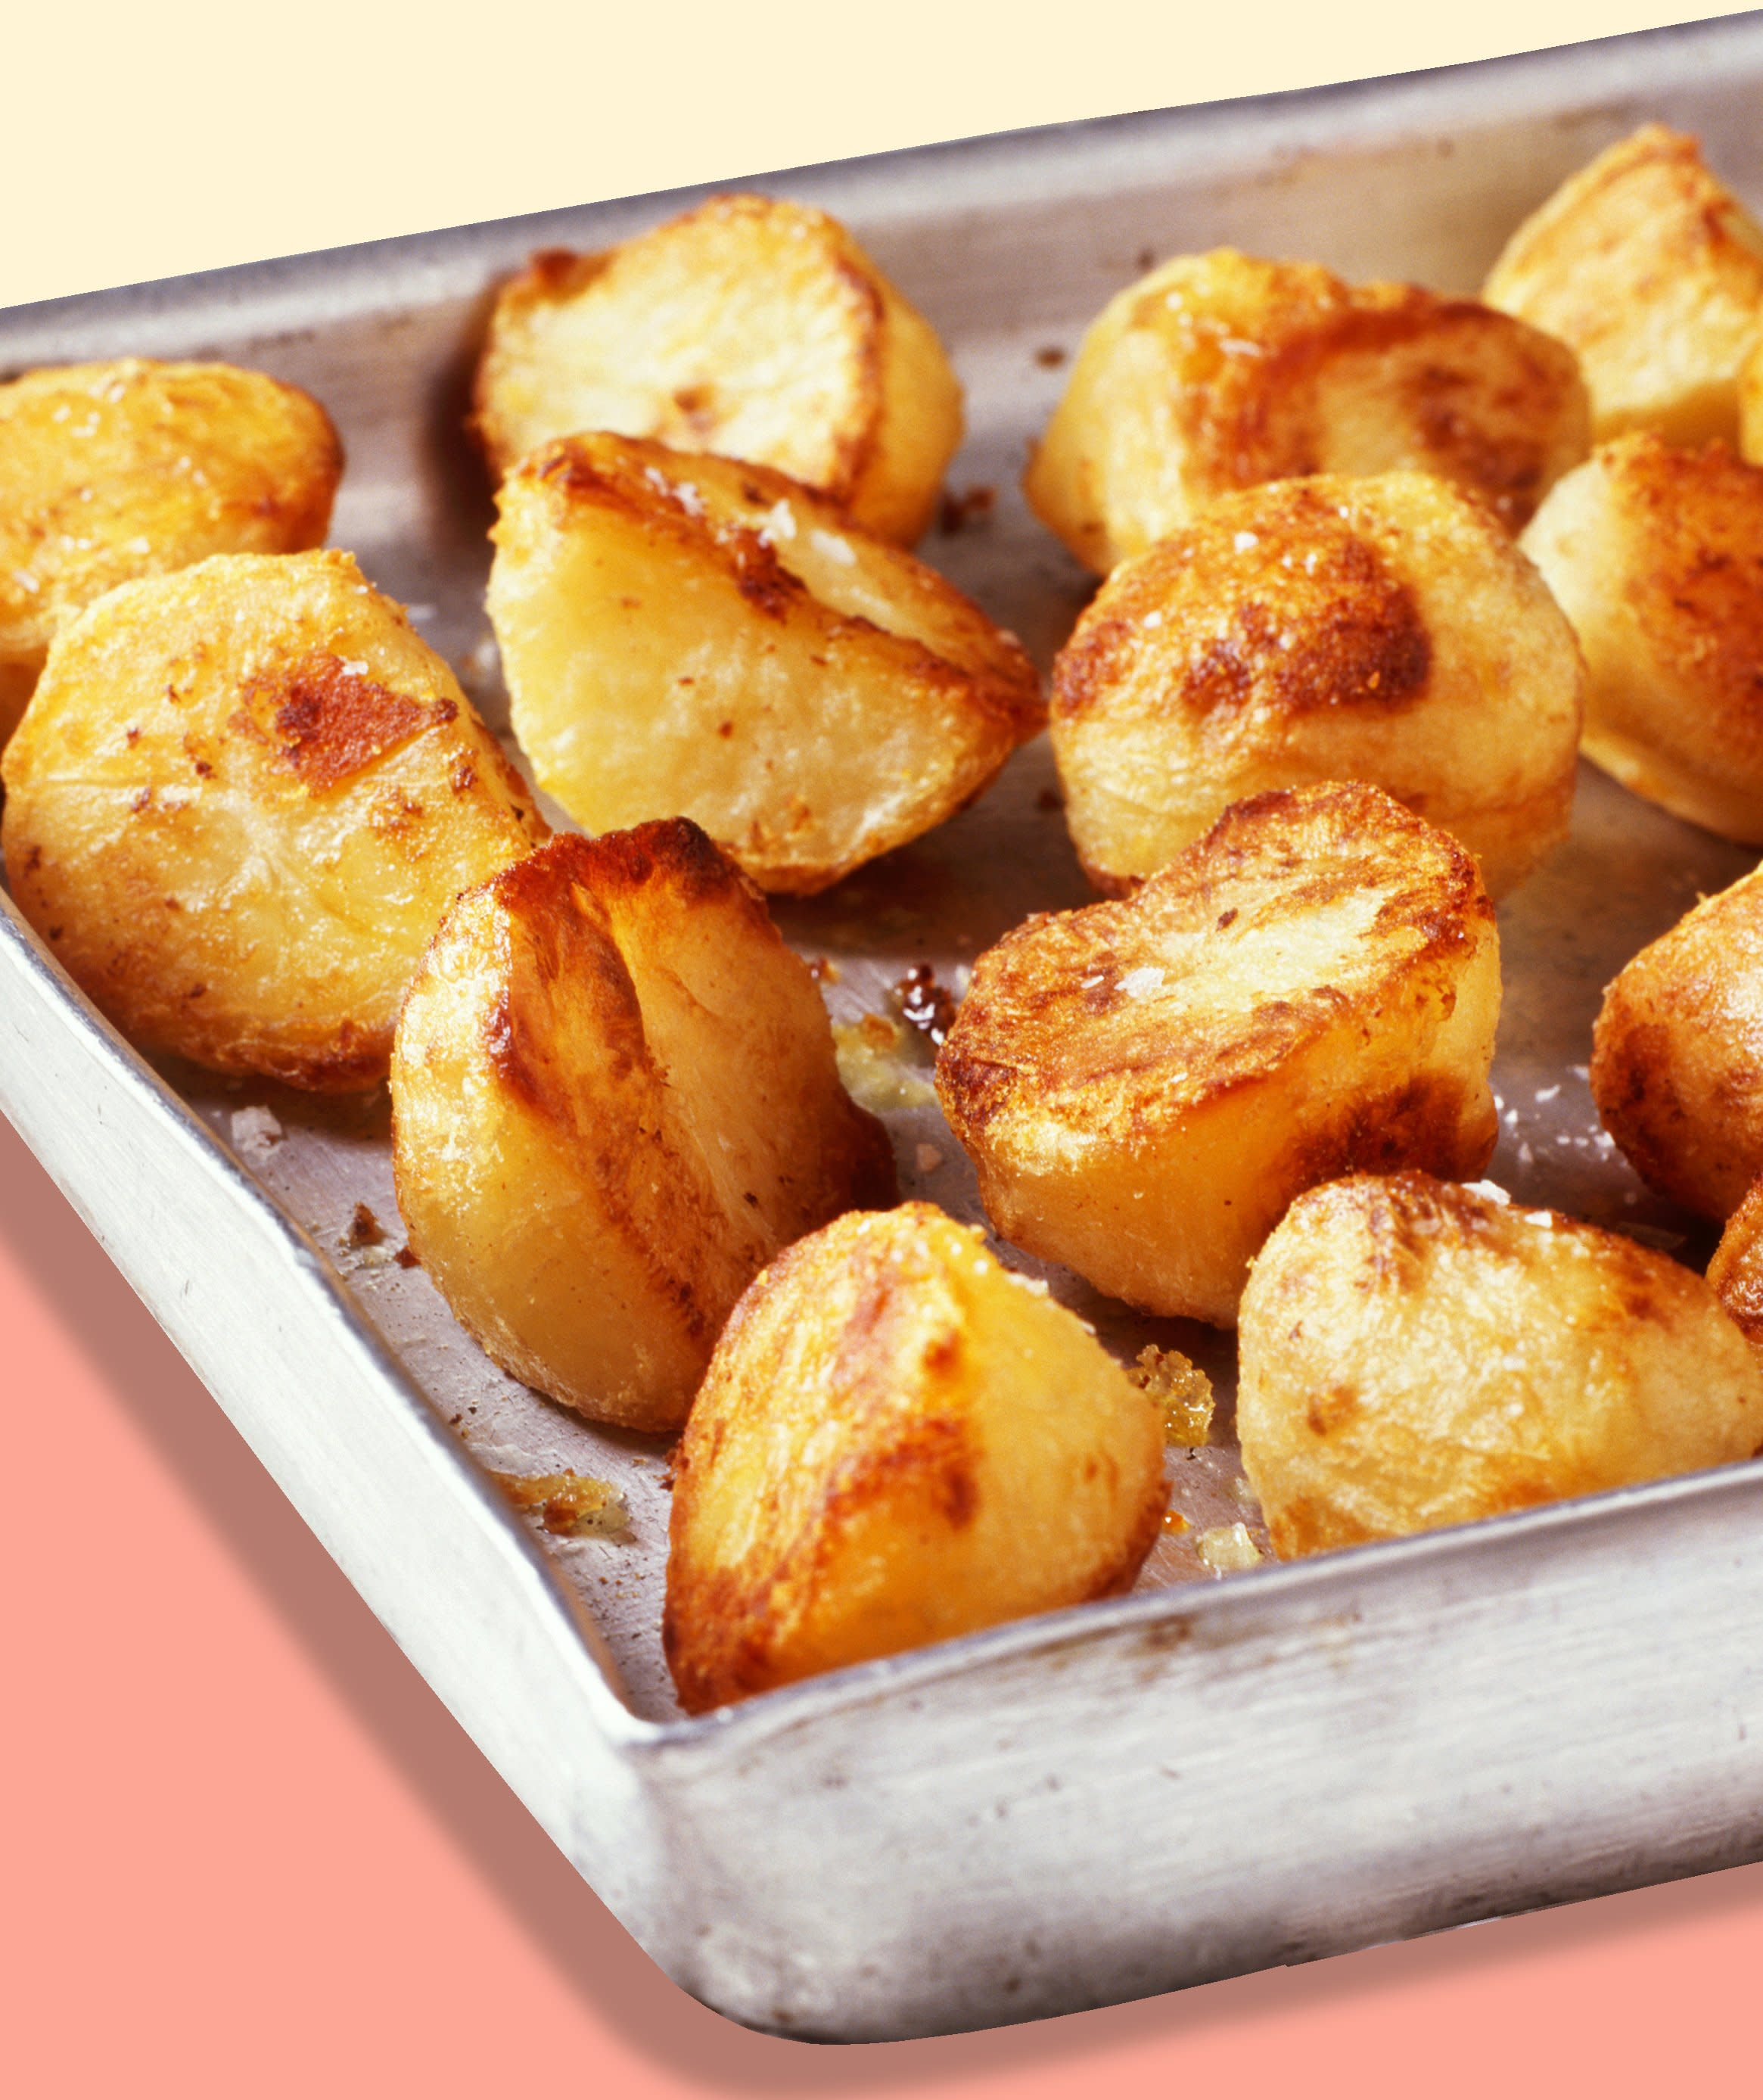 The 9 Commandments For Cooking Perfectly Crispy Oven